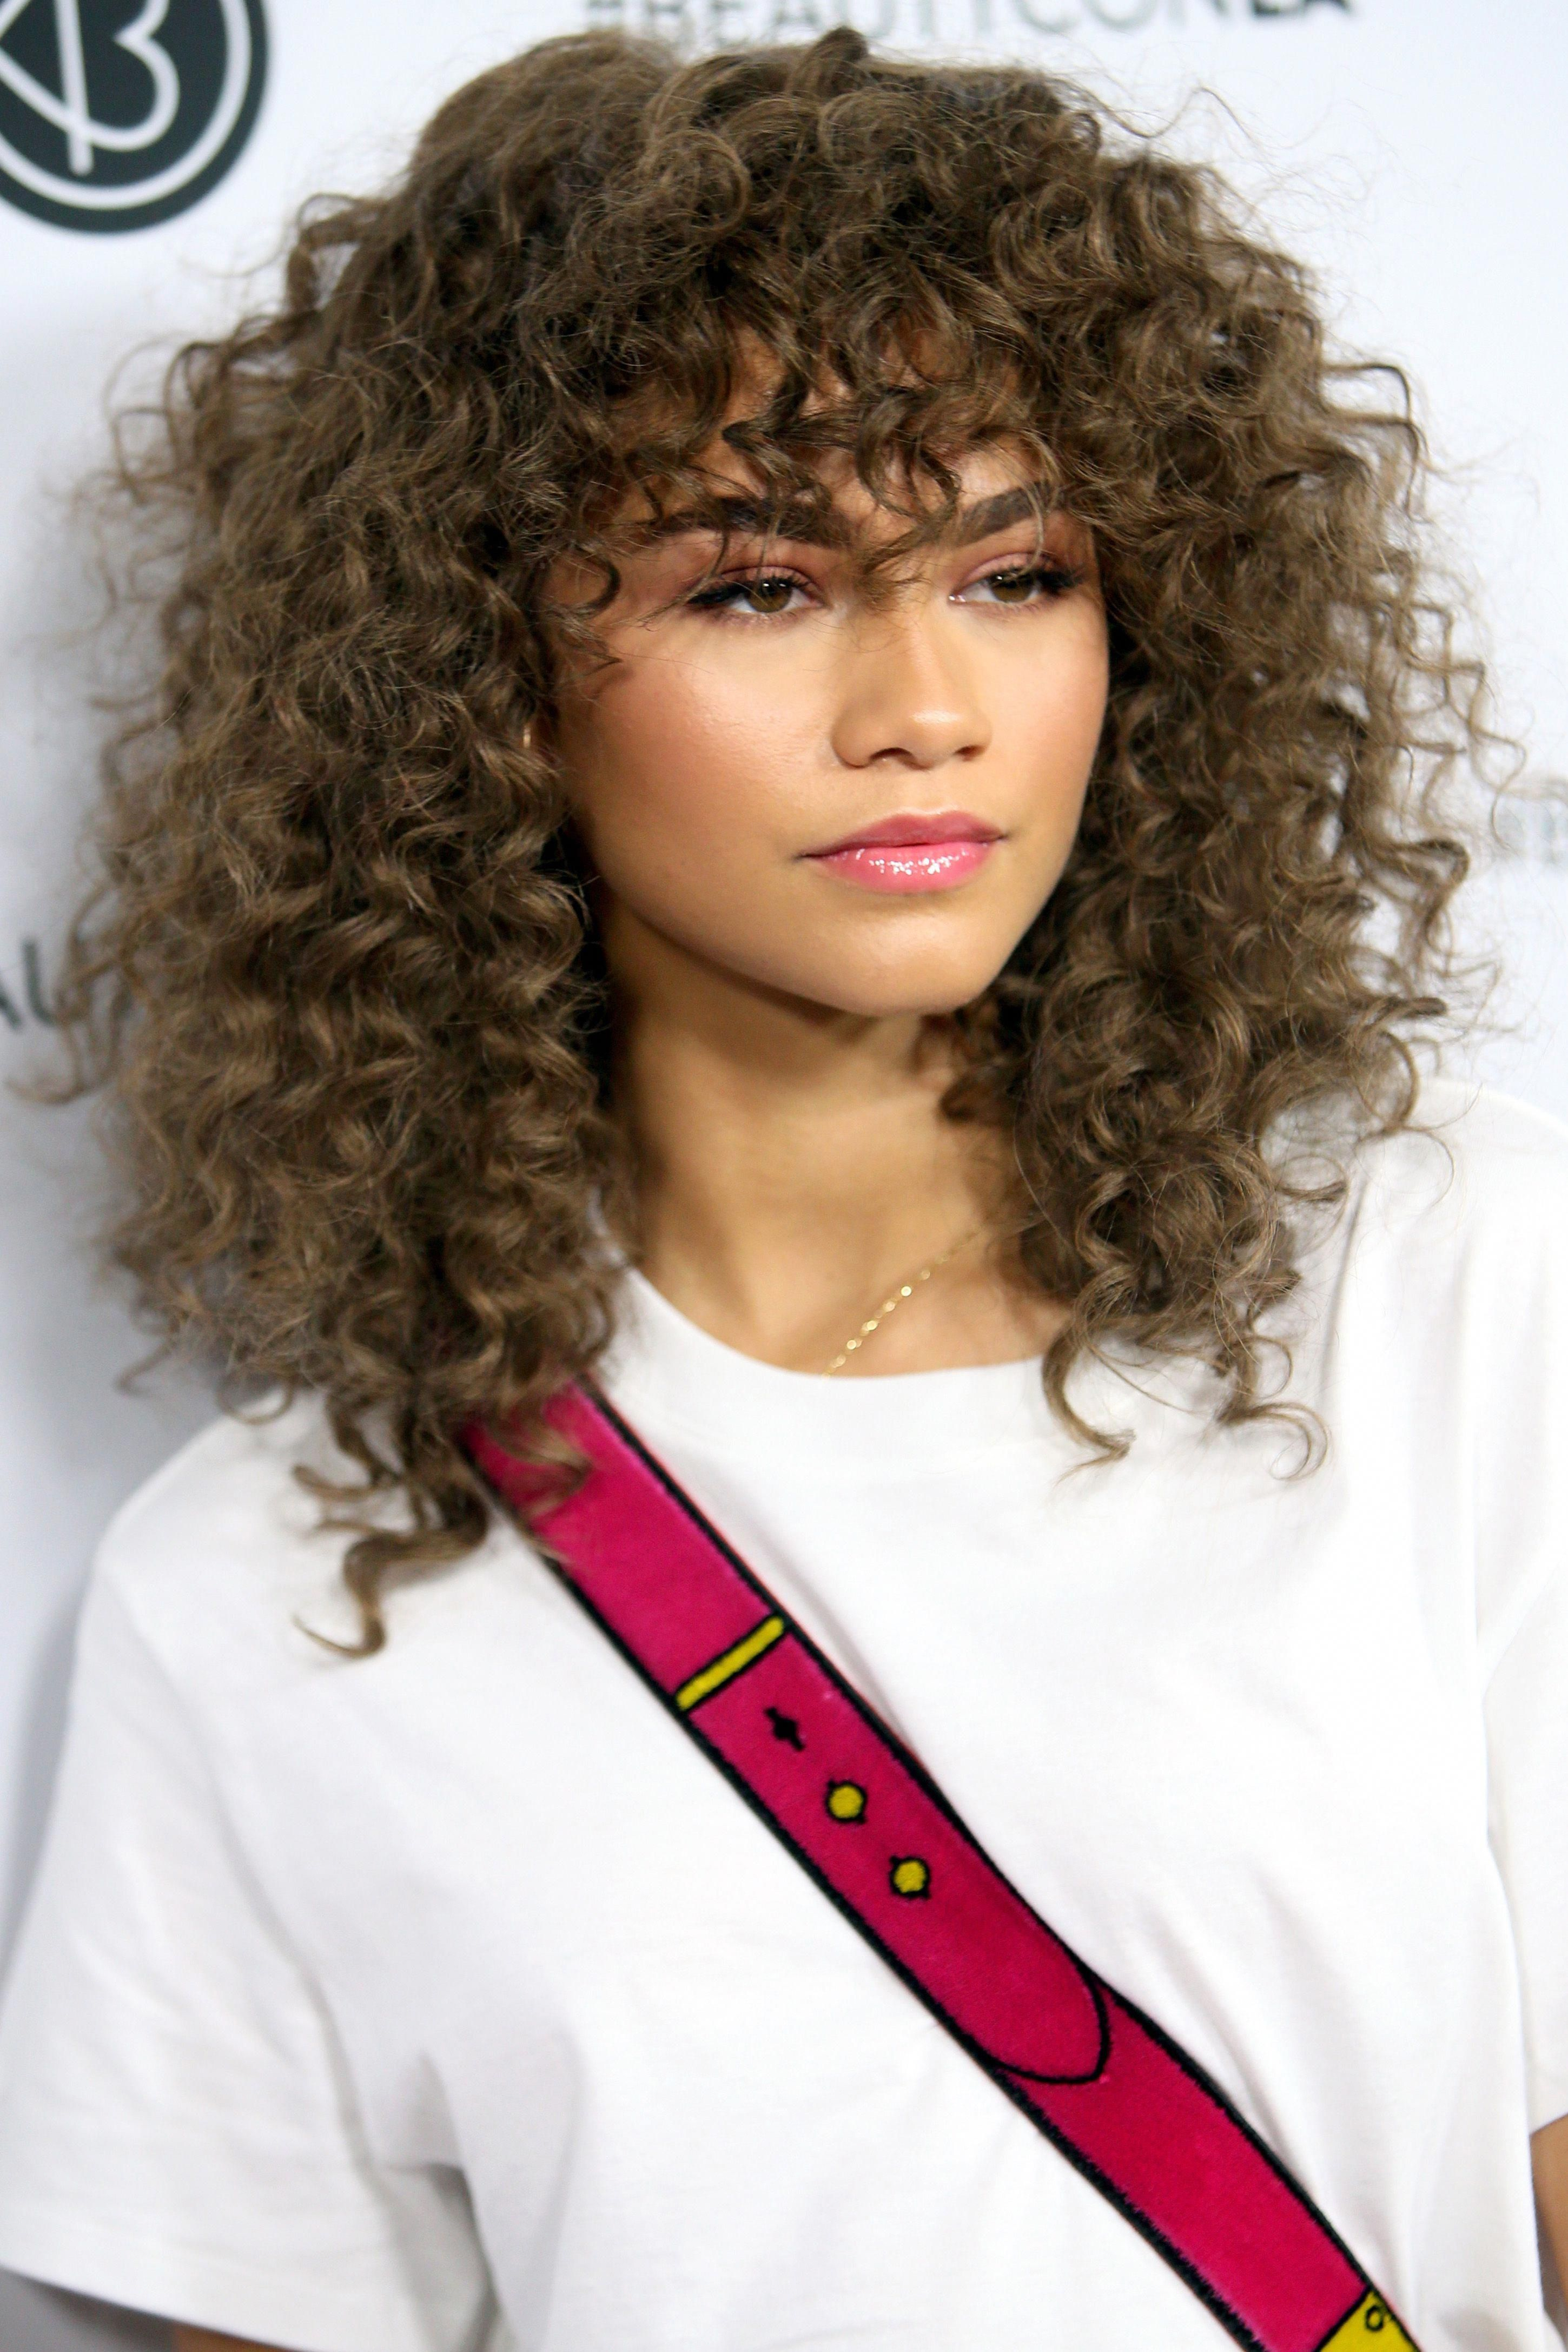 Curly Hair With Bangs The 15 Cutest Examples Of 2019 2020